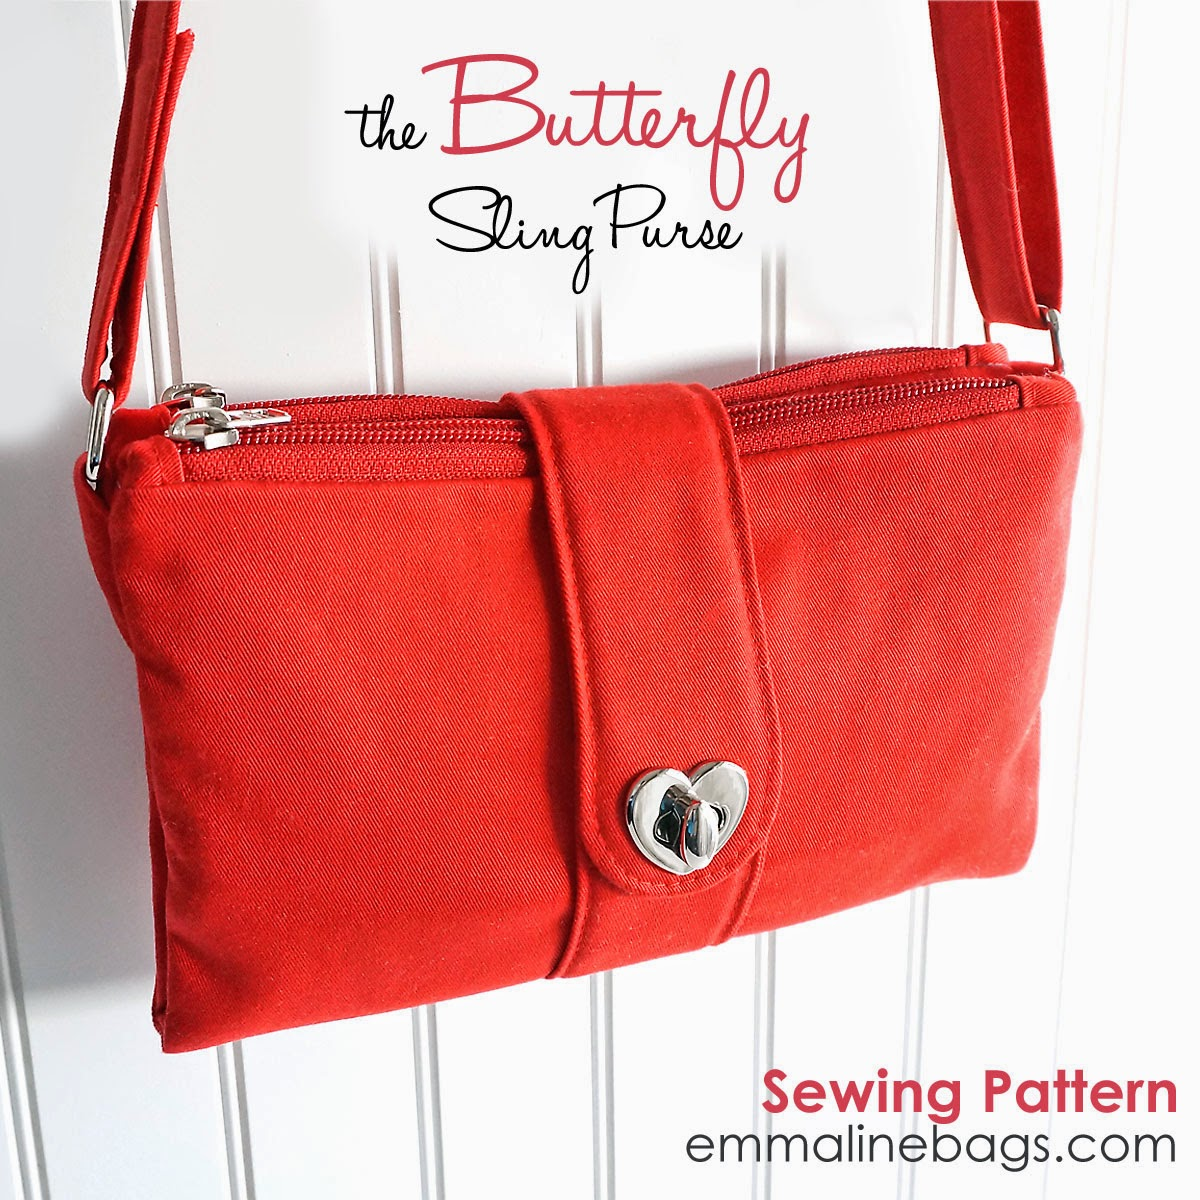 The Butterfly Sling Purse sewing pattern by Emmaline Bags